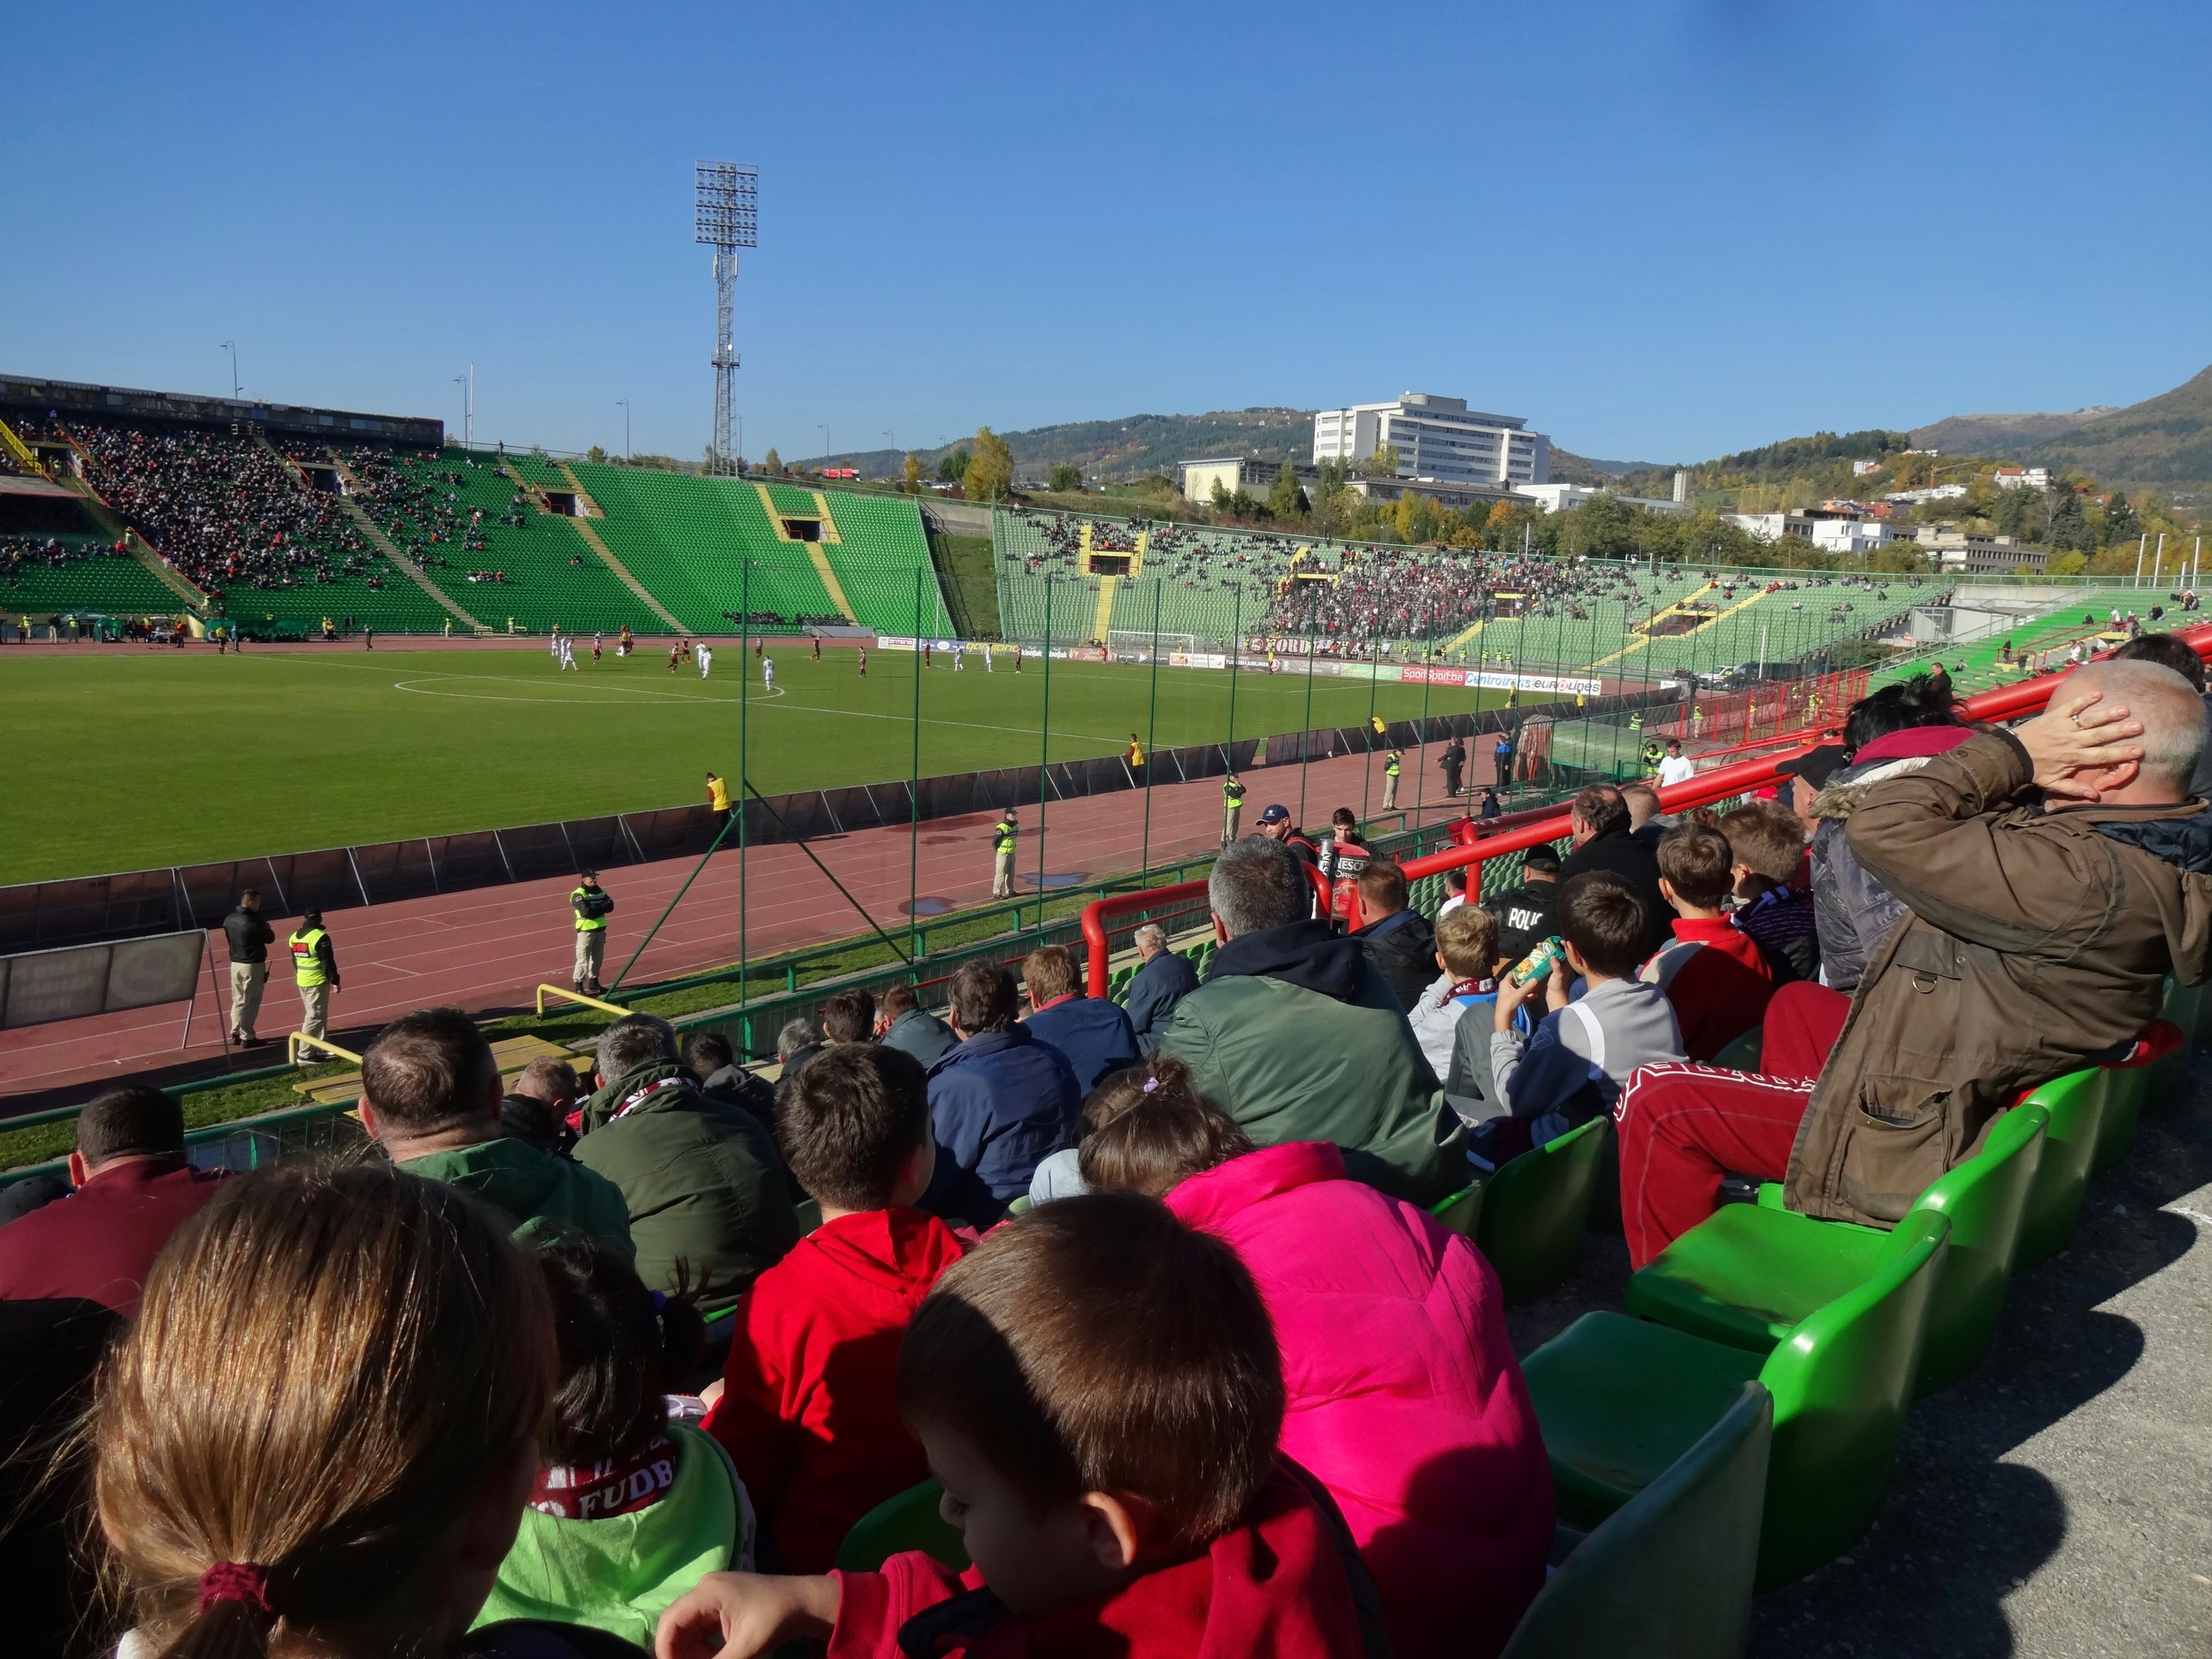 a SOCCER game in sarajevo was a splurge... but it was an awesome local experience. sarajevo, bosnia - m.quigley